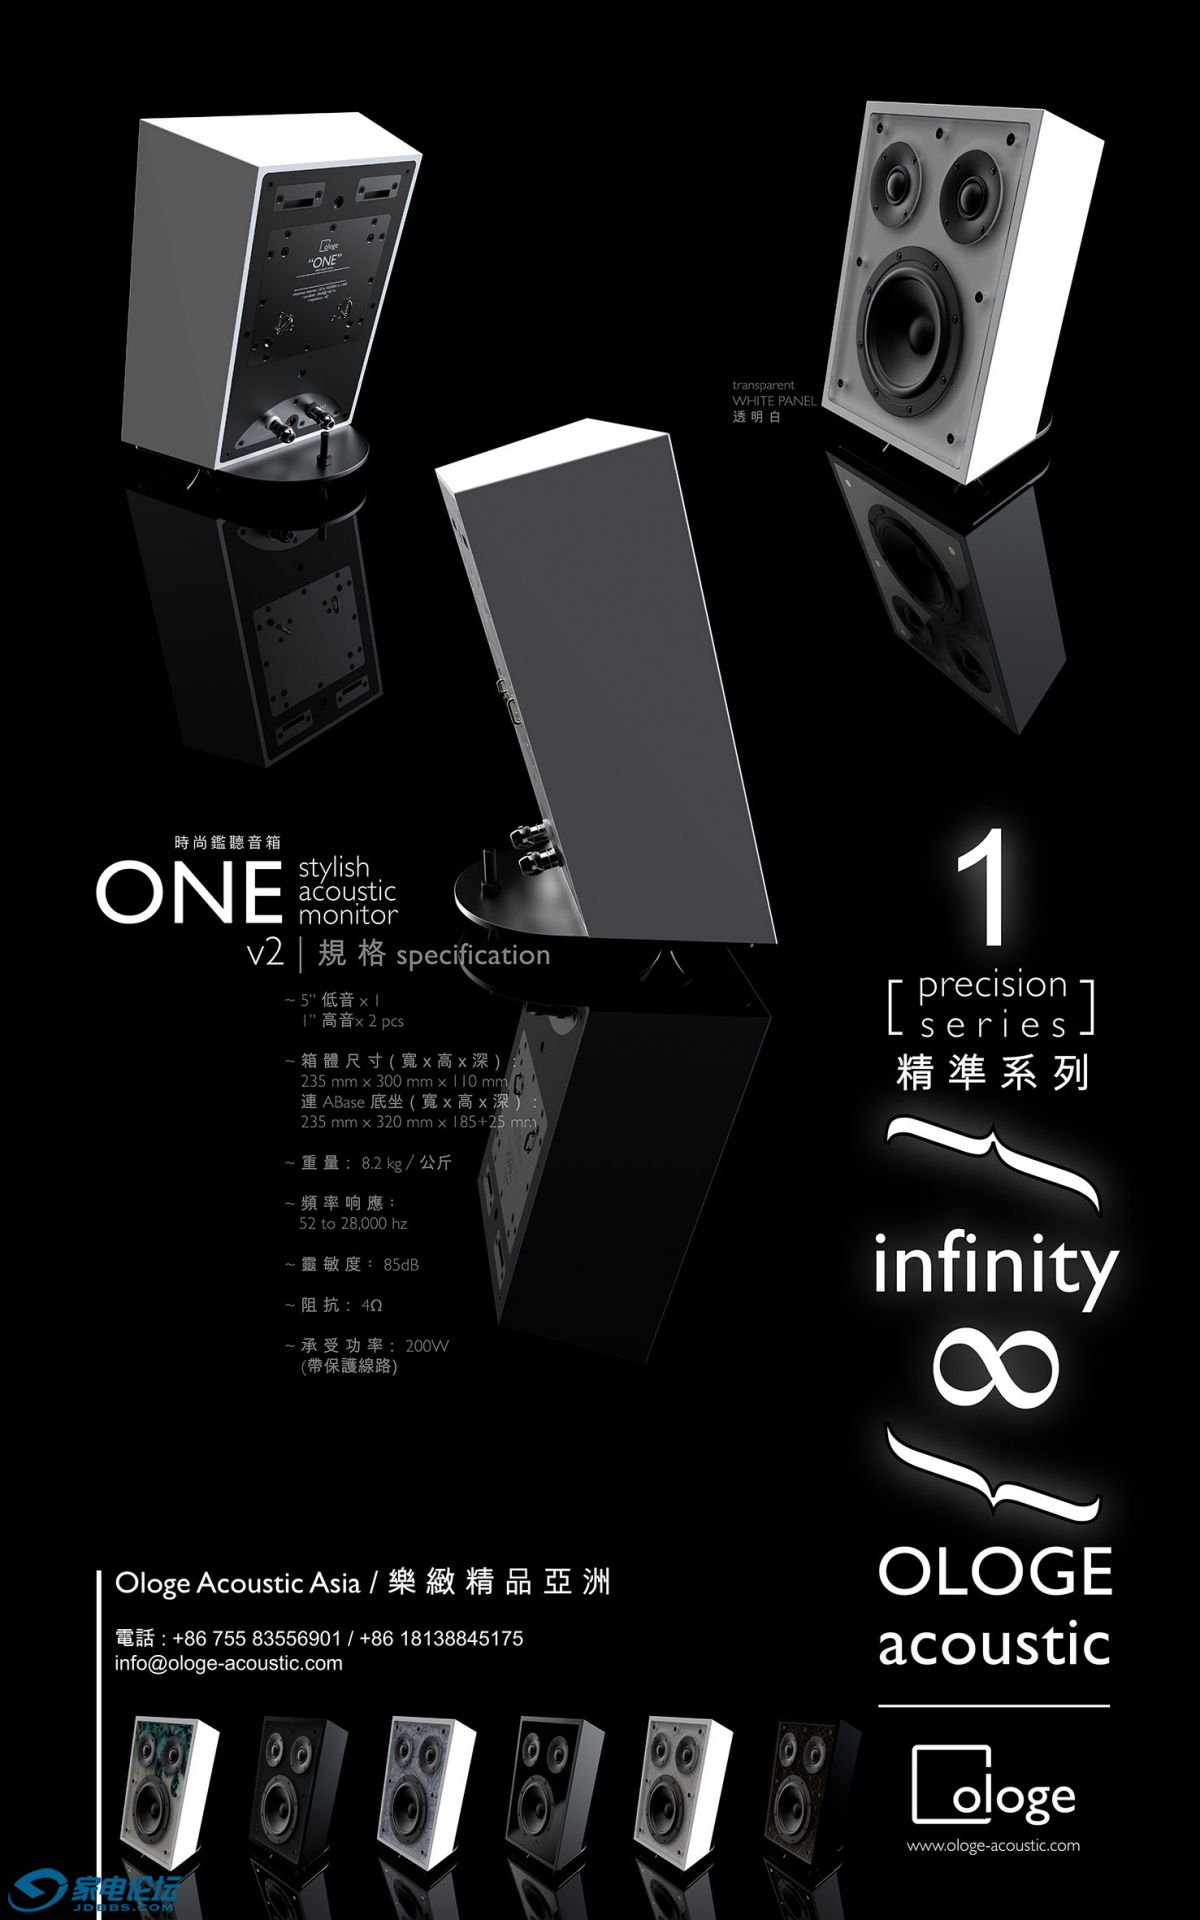 infinity layout - chinese-4.jpg